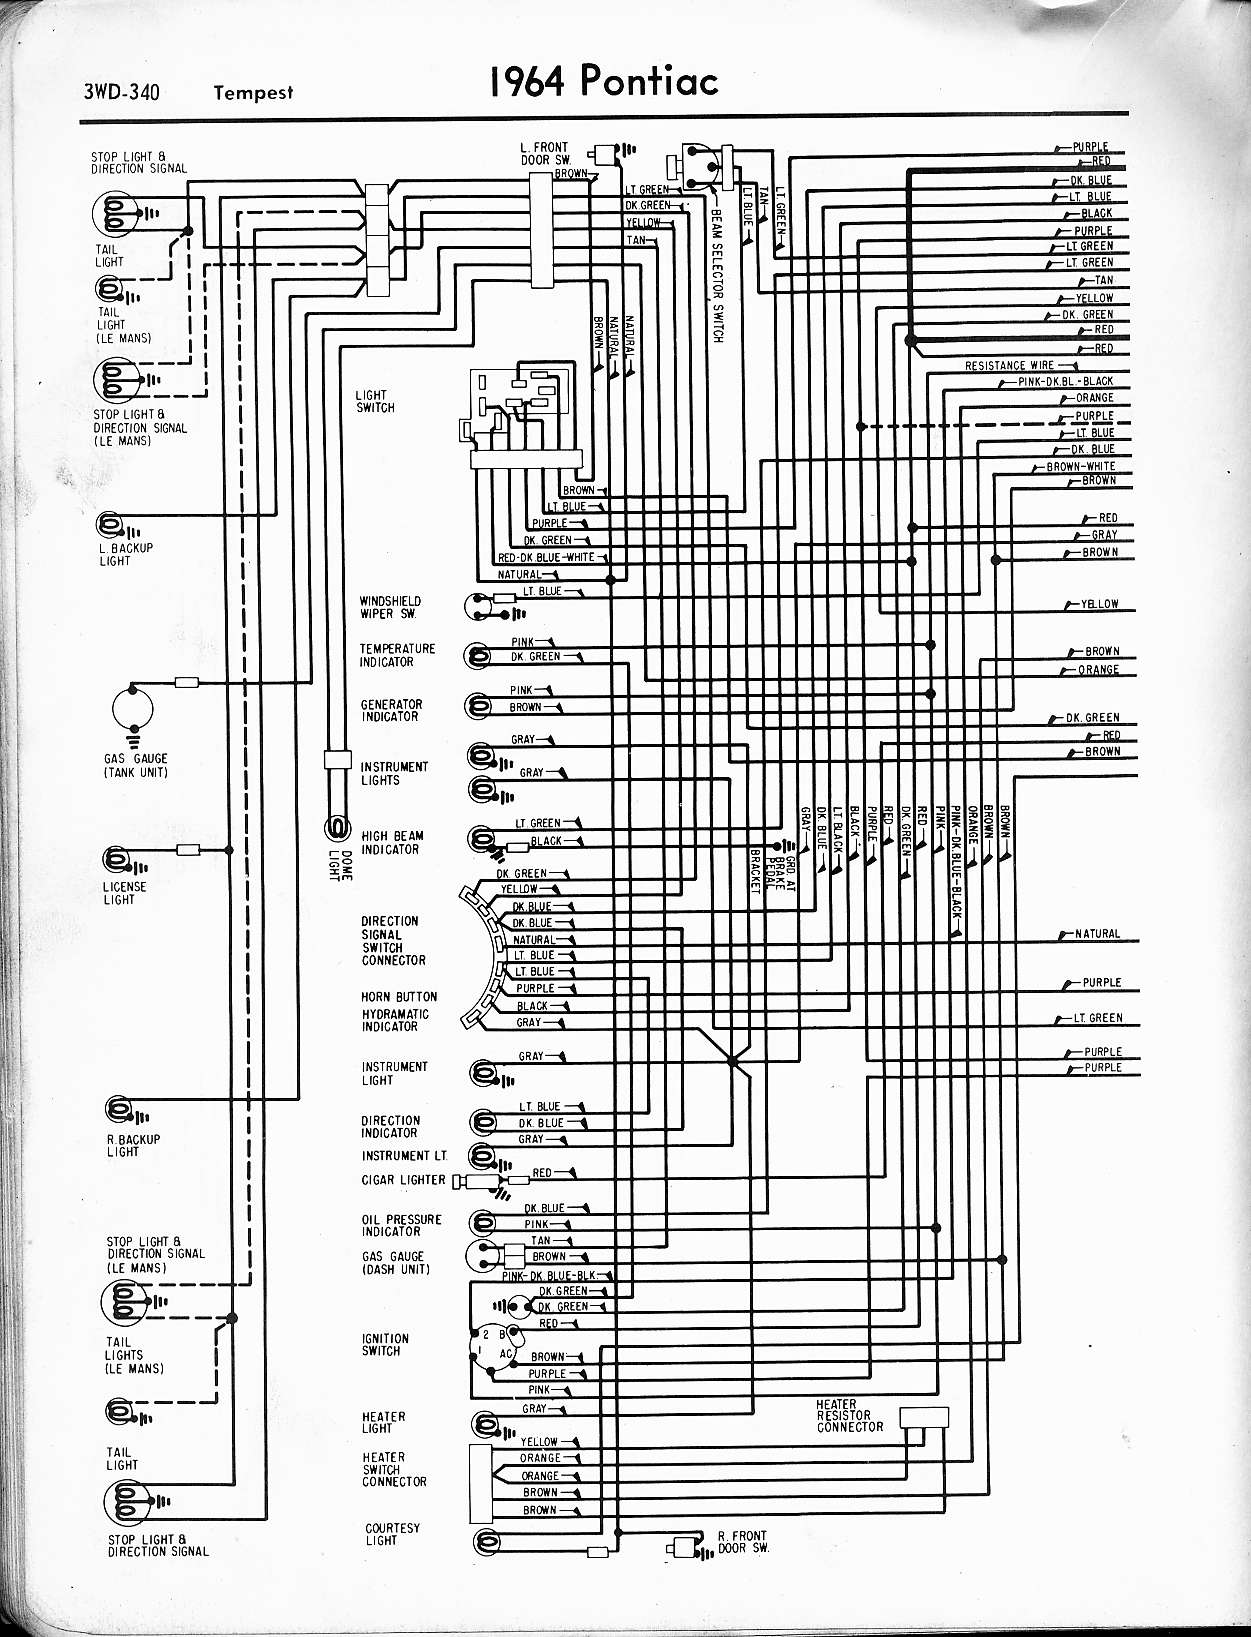 wallace racing wiring diagrams rh wallaceracing com 1966 pontiac parisienne wiring diagram 1966 Pontiac Wiring-Diagram Coil